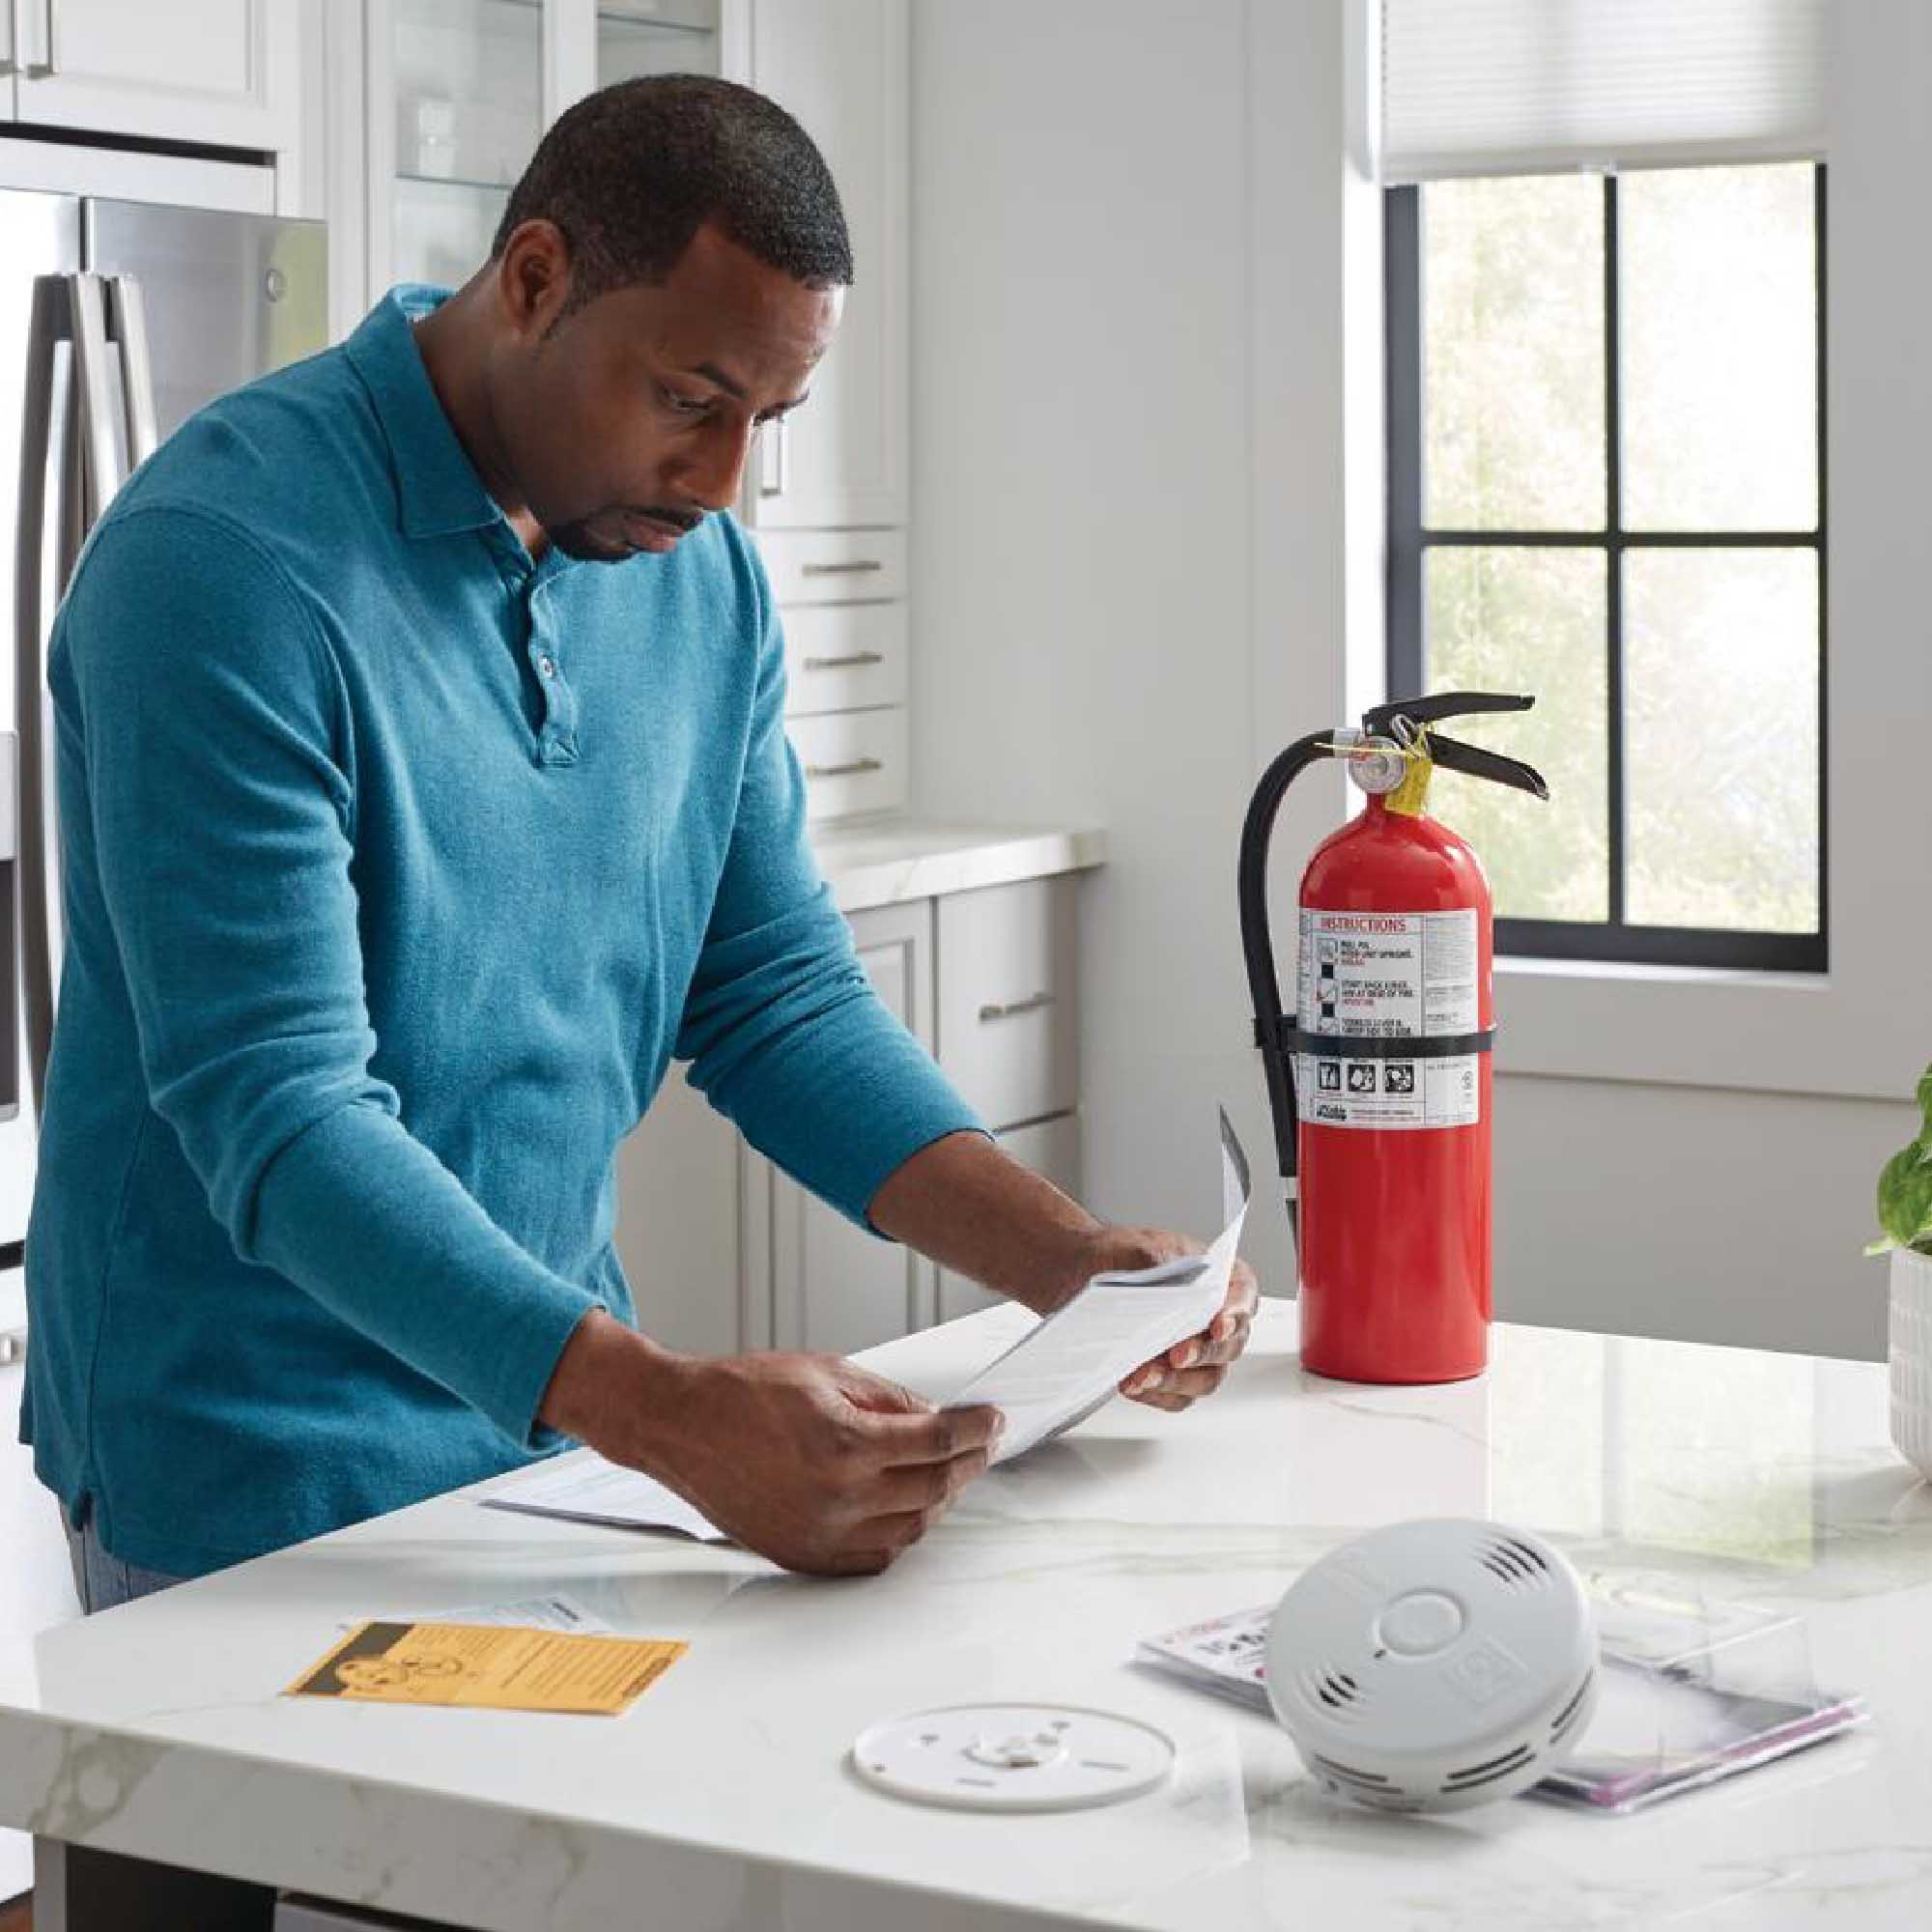 A man reviews fire extinguisher instructions.